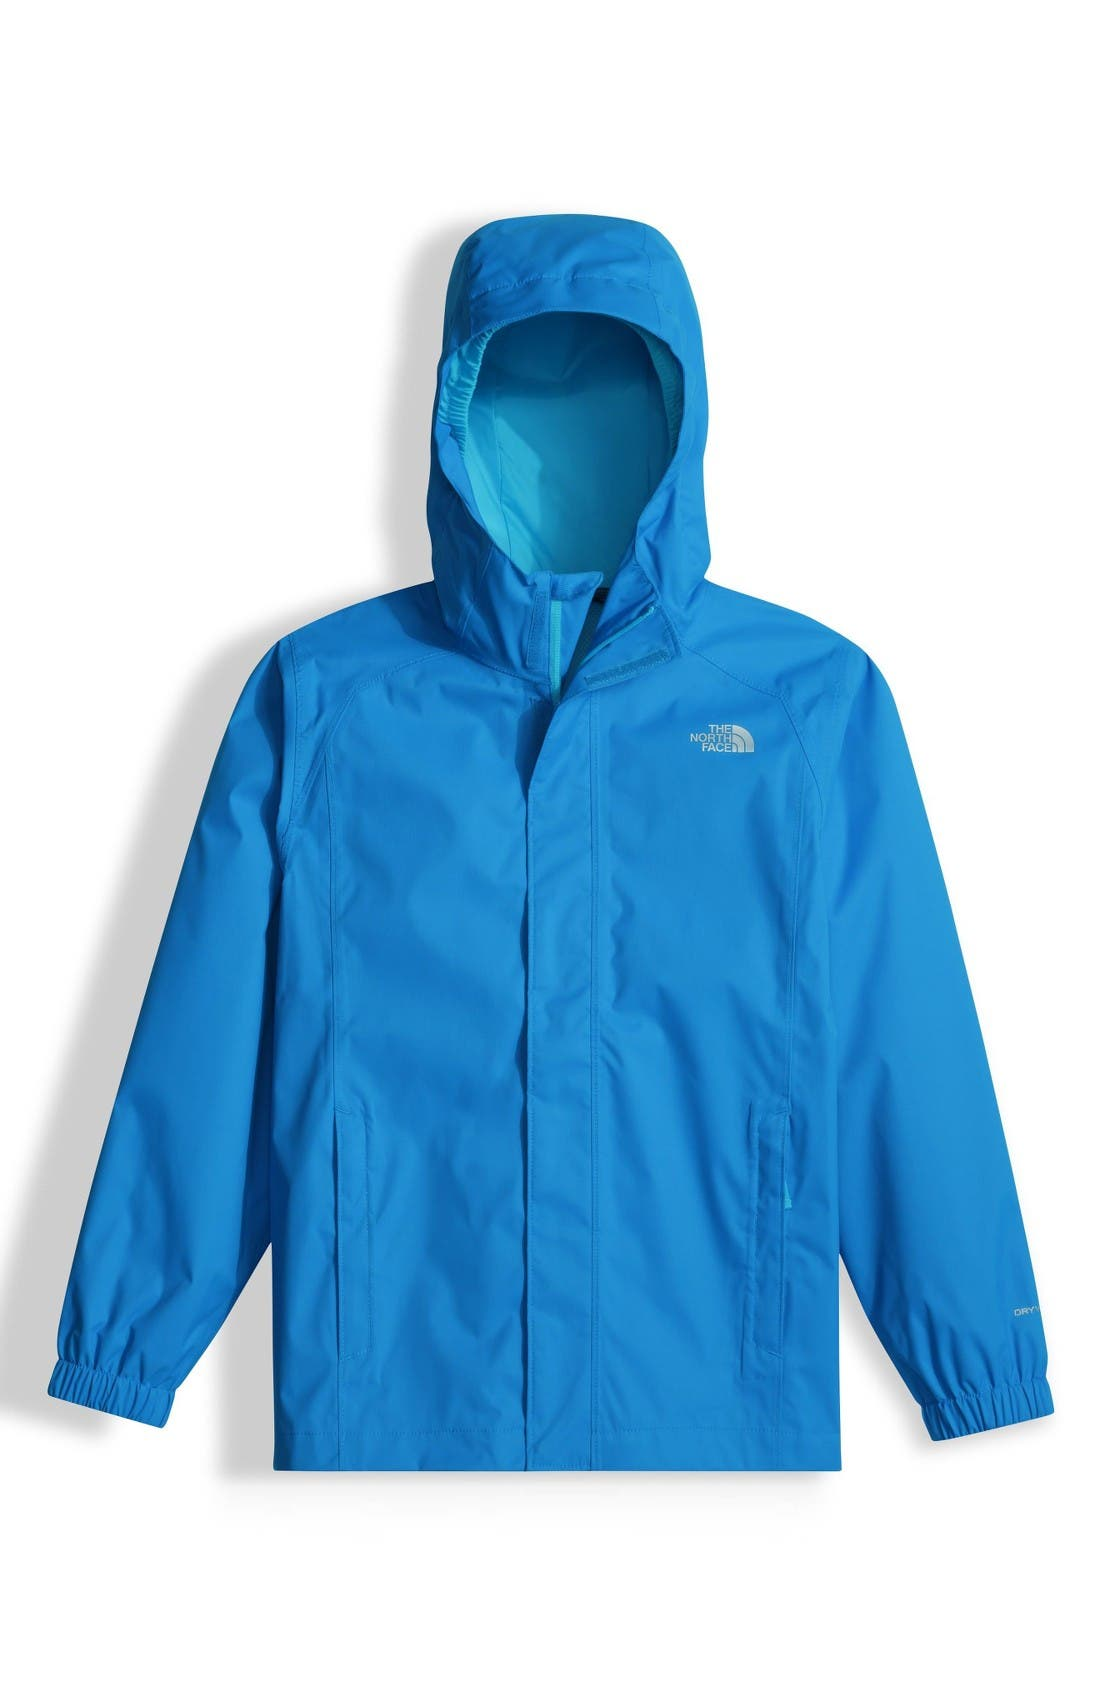 THE NORTH FACE 'Resolve' Waterproof Jacket